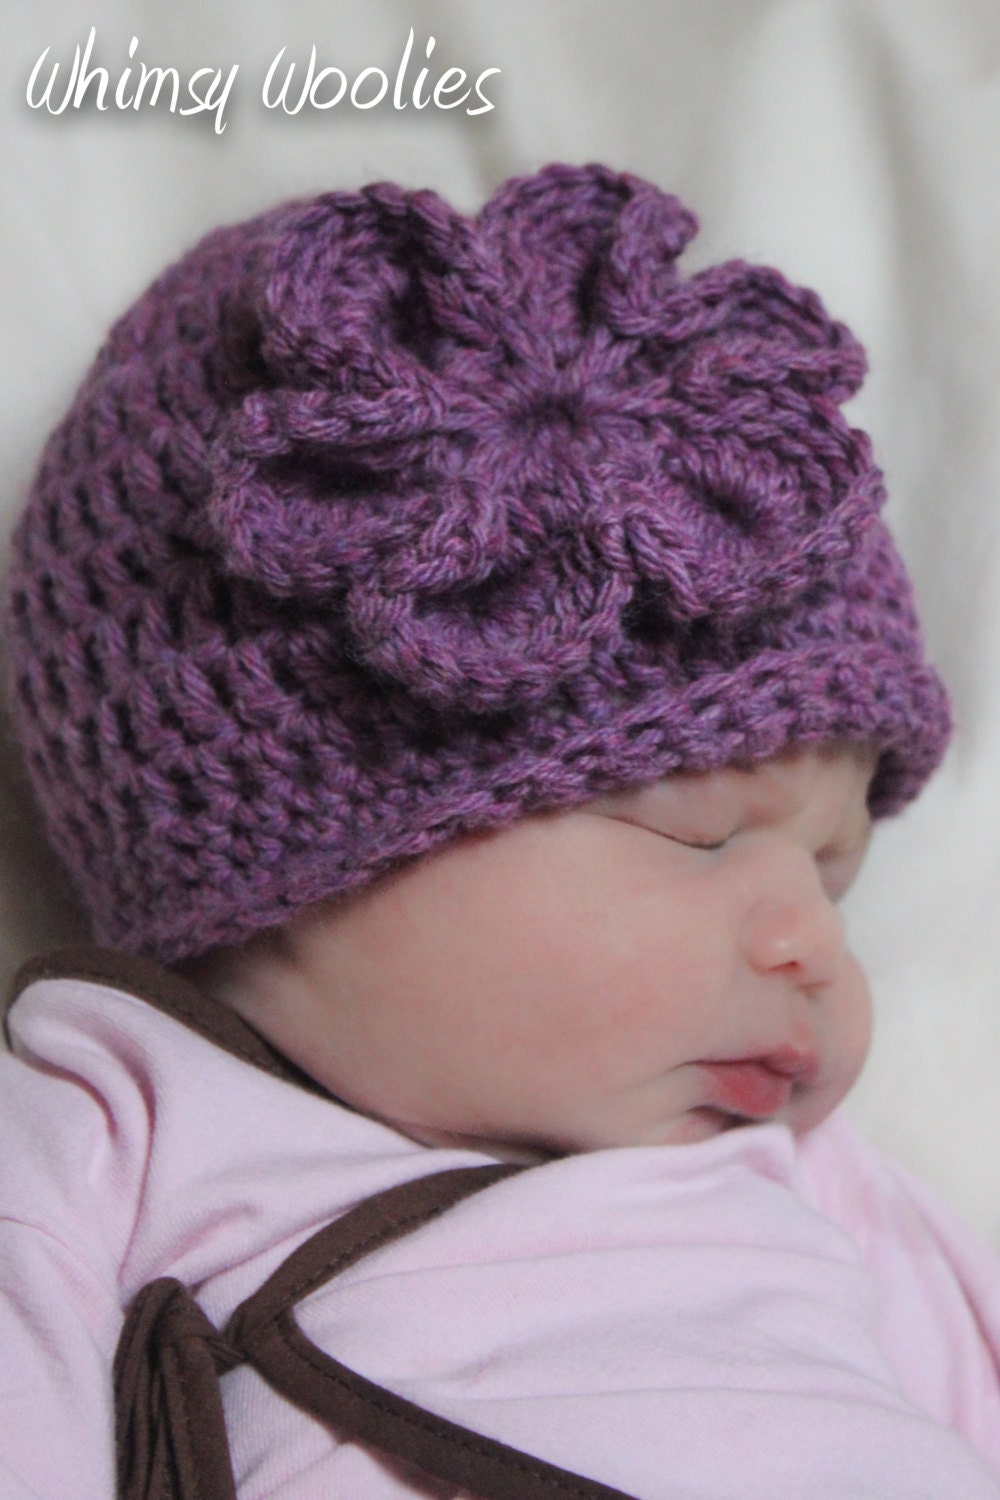 Beginner Crochet Patterns Beanie : CROCHET HaT PATTERN: Learn to Crochet Beginner Beanie with